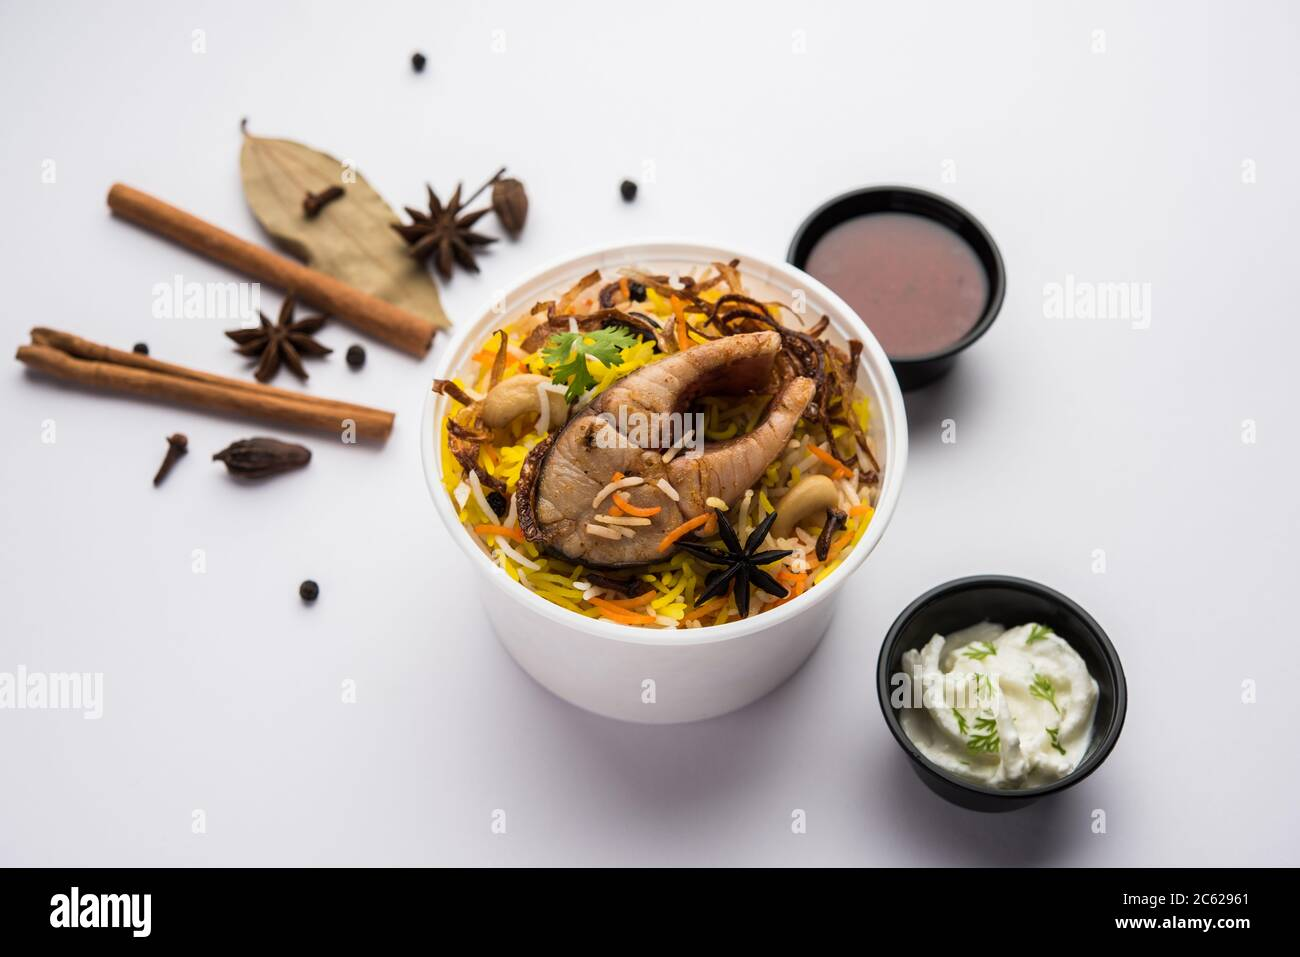 Restaurant Style Fish Biryani Or Pulao Packed For Home Delivery In Plastic Box Or Container With Raita And Salan Stock Photo Alamy